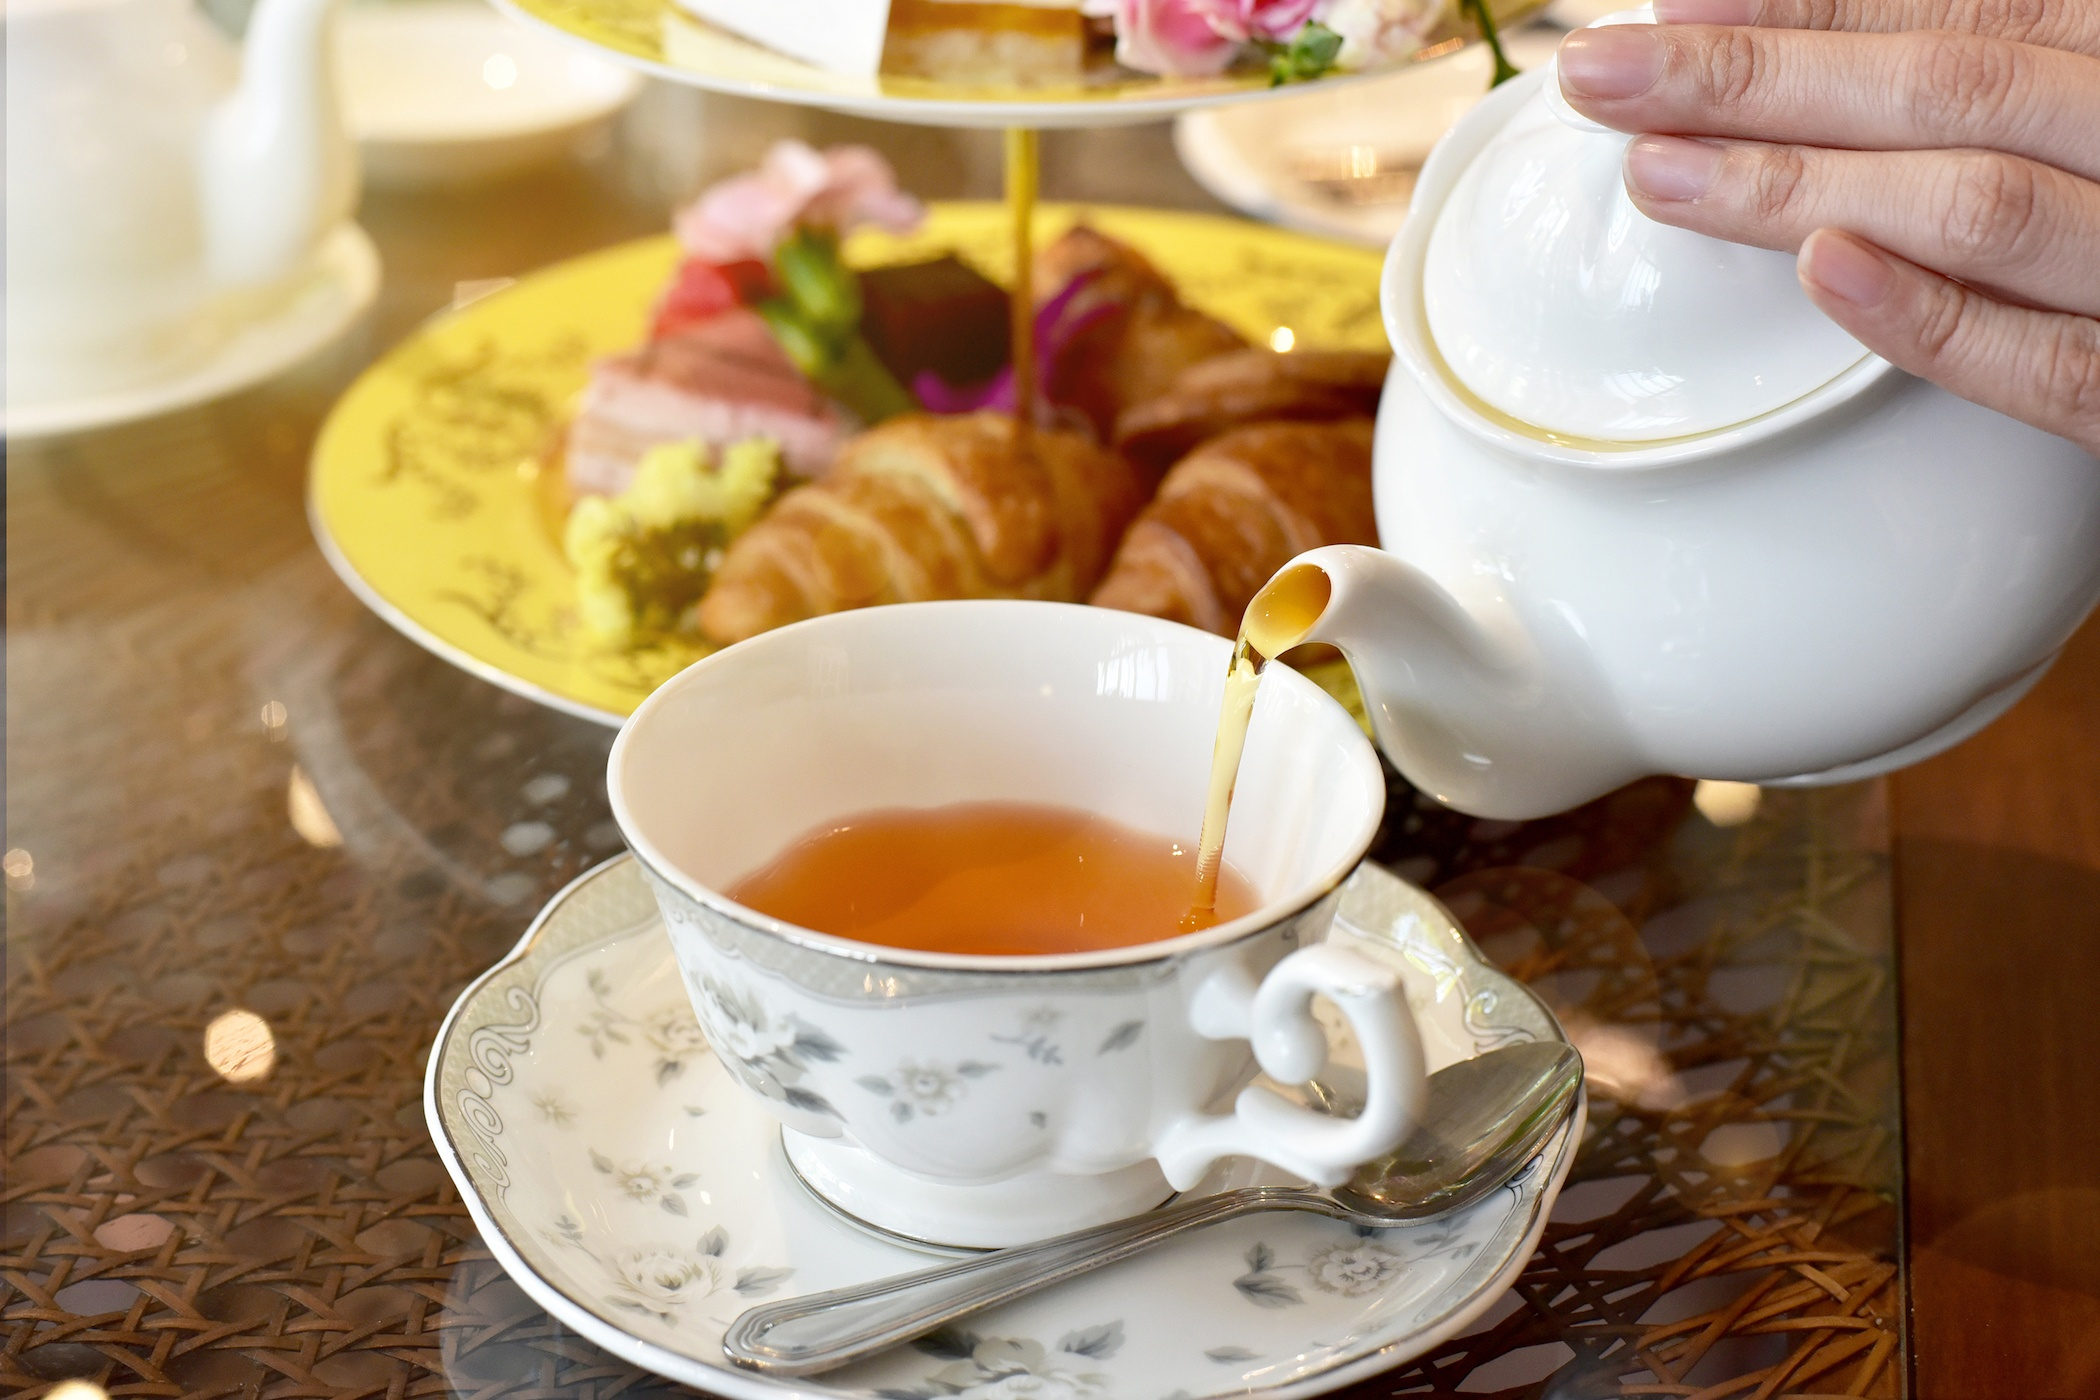 Pouring tea from vintage teapot to the cup, English Tea Time.